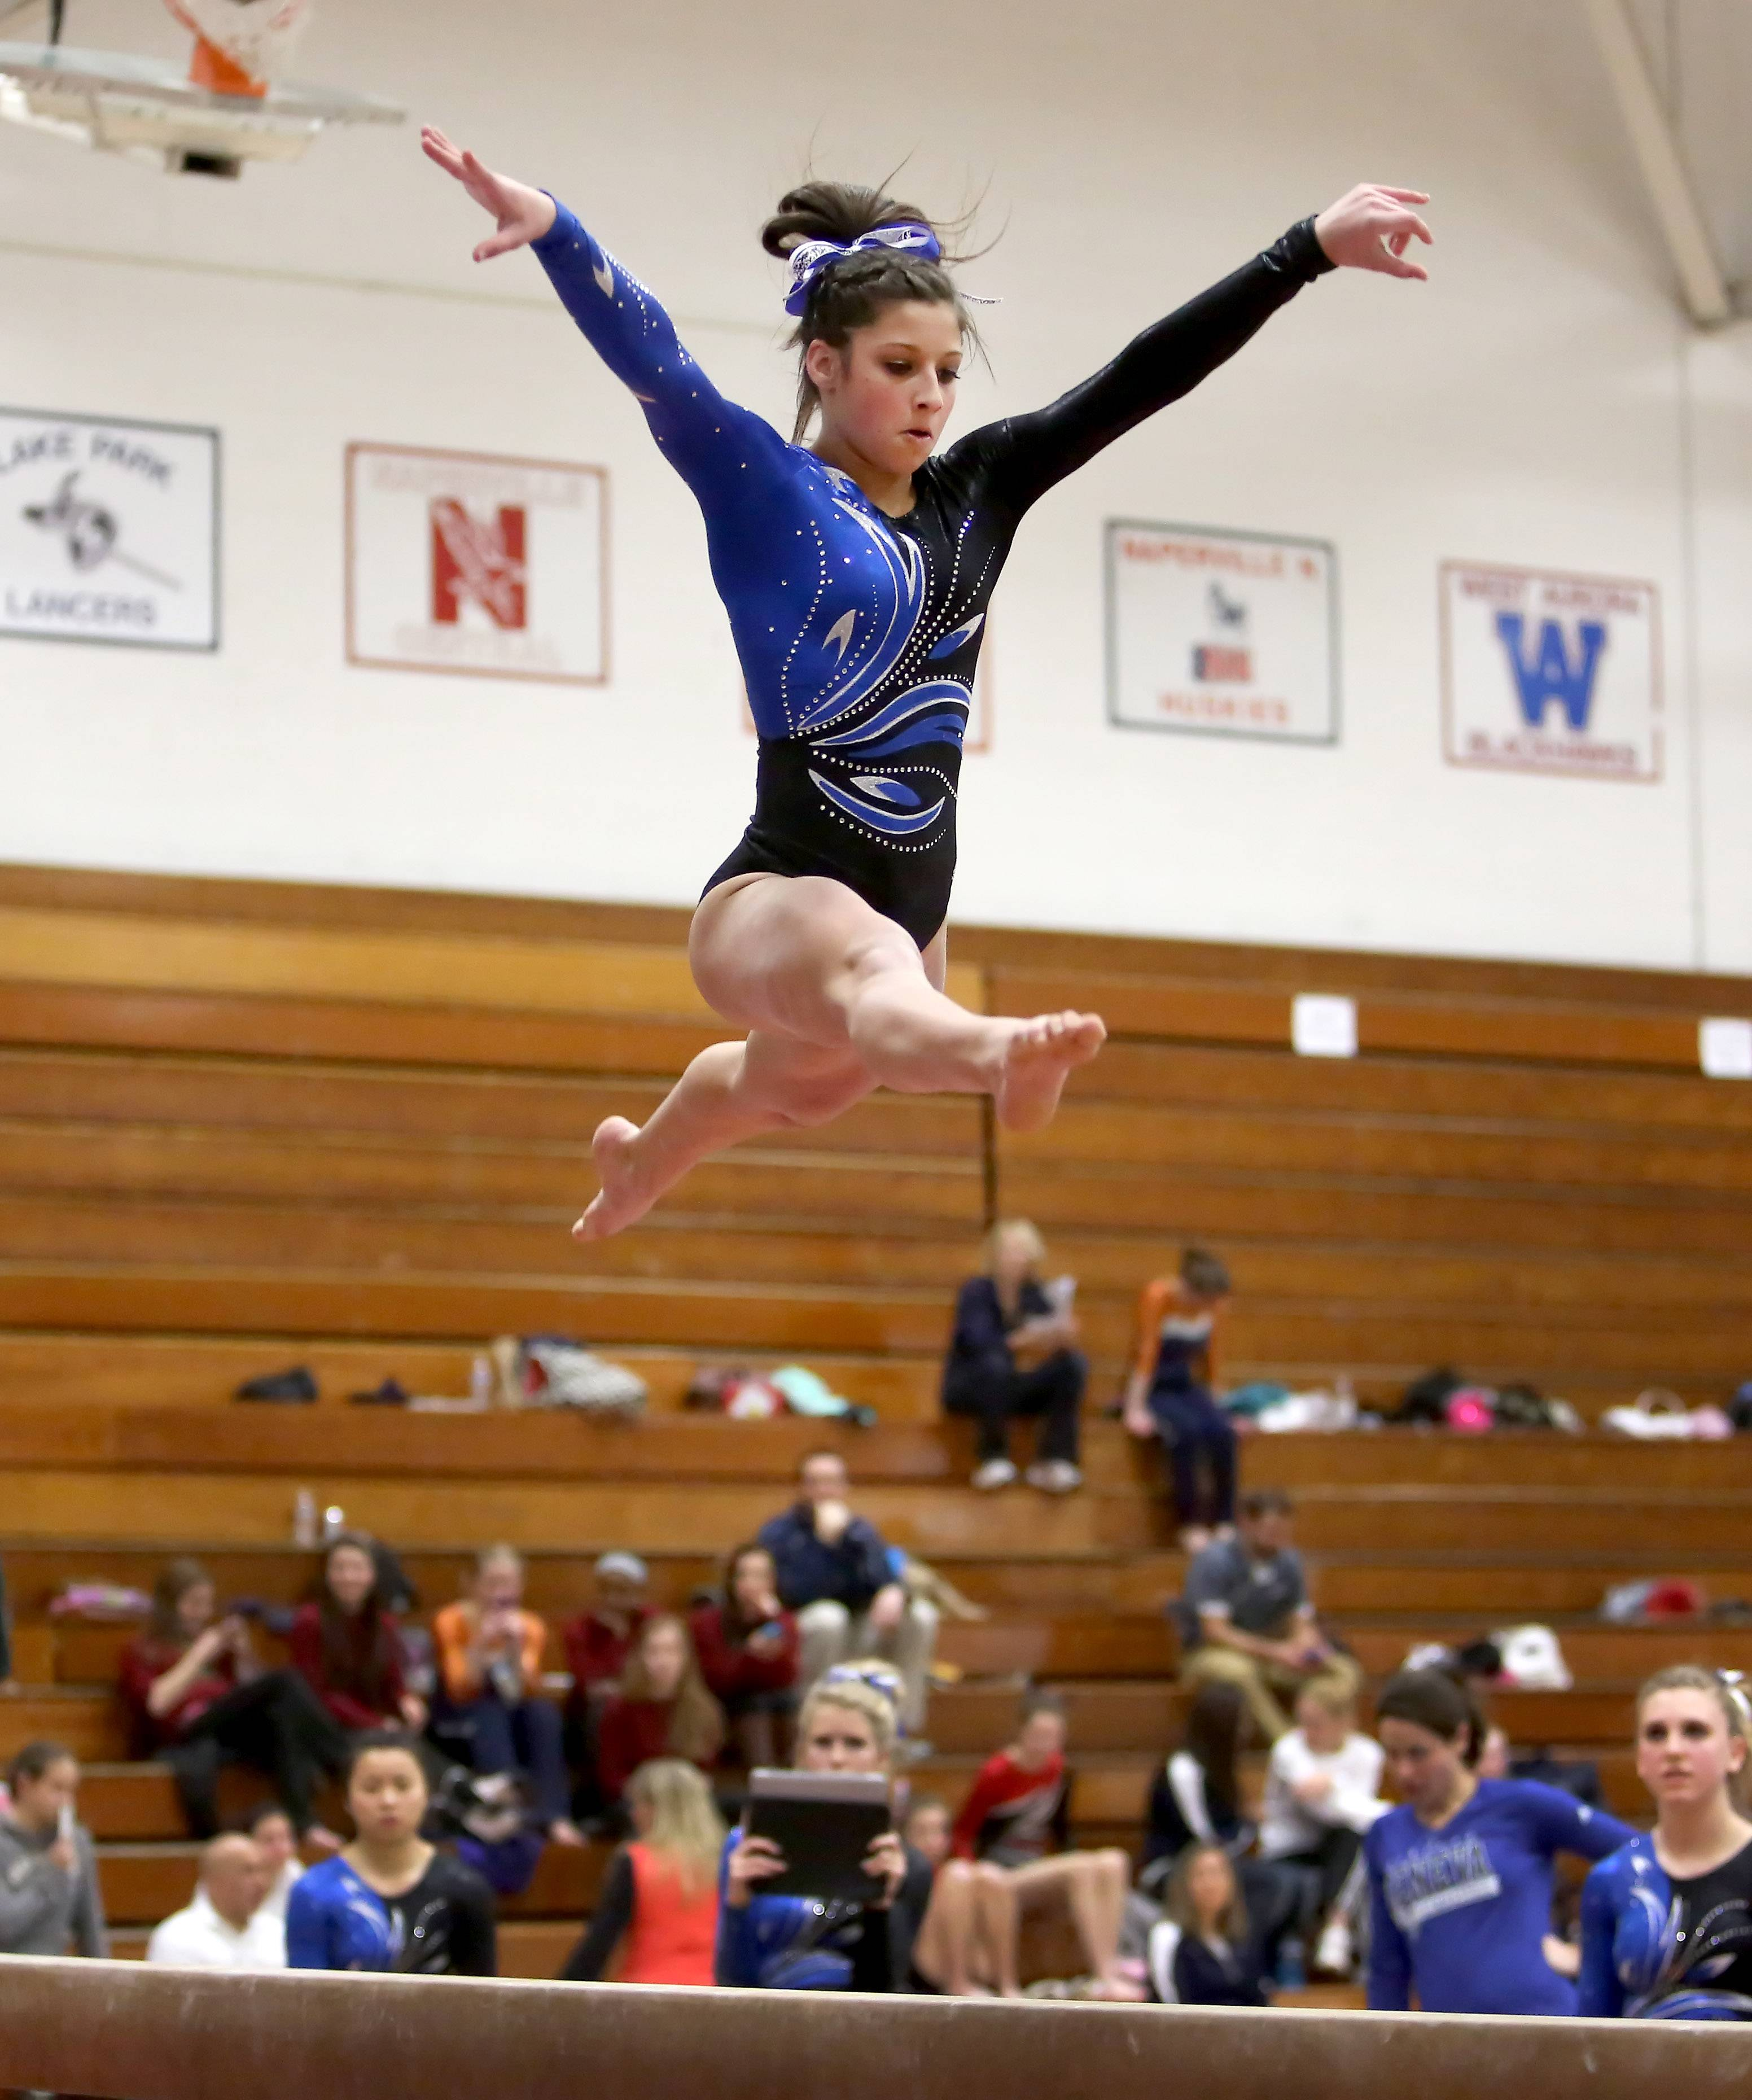 Claire Rose Ginsberg of Geneva performs on the beam during gymnastics sectional at Wheaton Warrenville South on Tuesday in Wheaton.